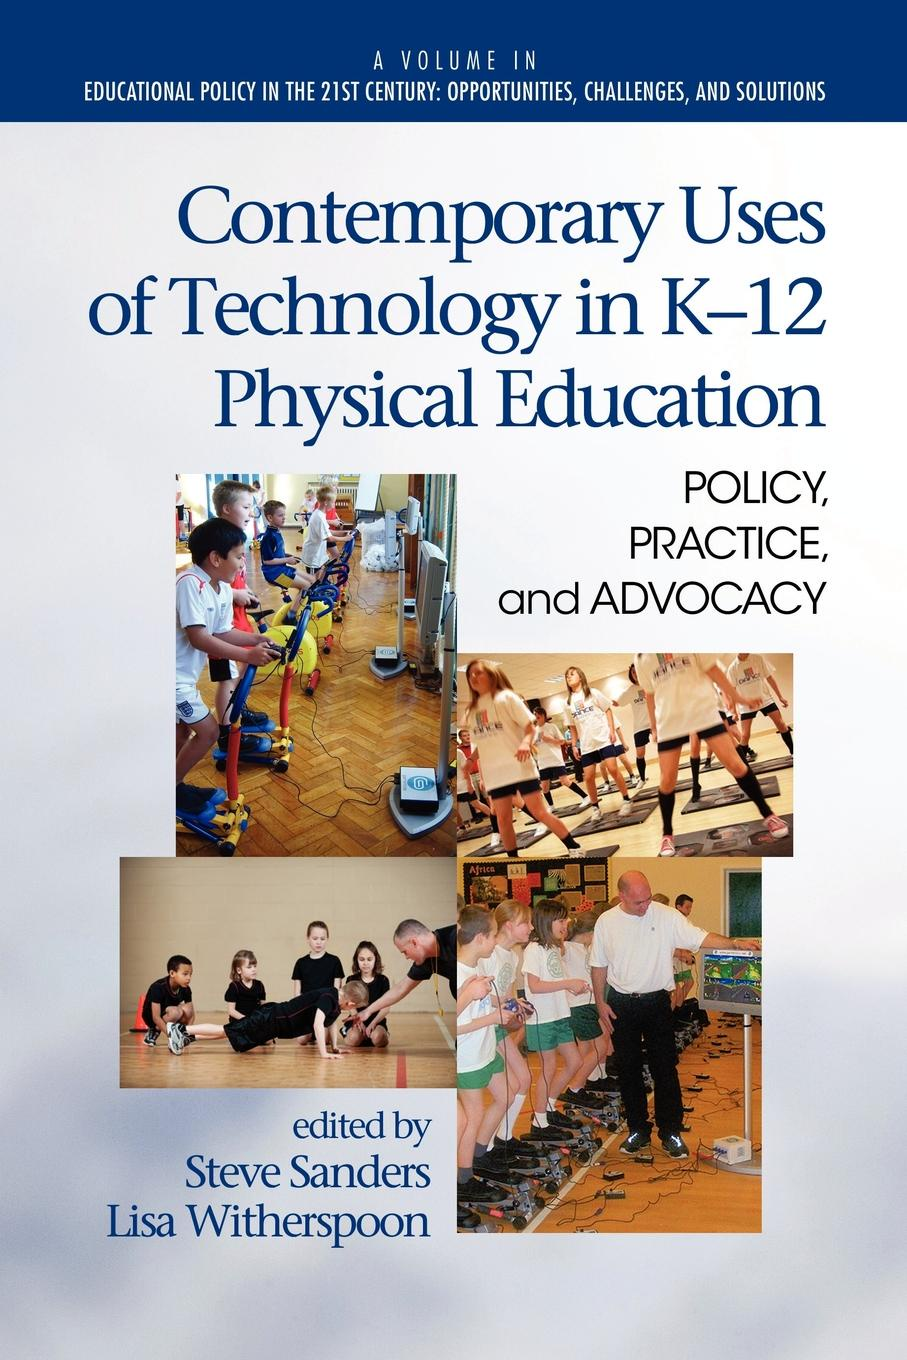 Contemporary Uses of Technology in K-12 Physical Education. Policy, Practice, and Advocacy contemporary uses of technology in k 12 physical education policy practice and advocacy